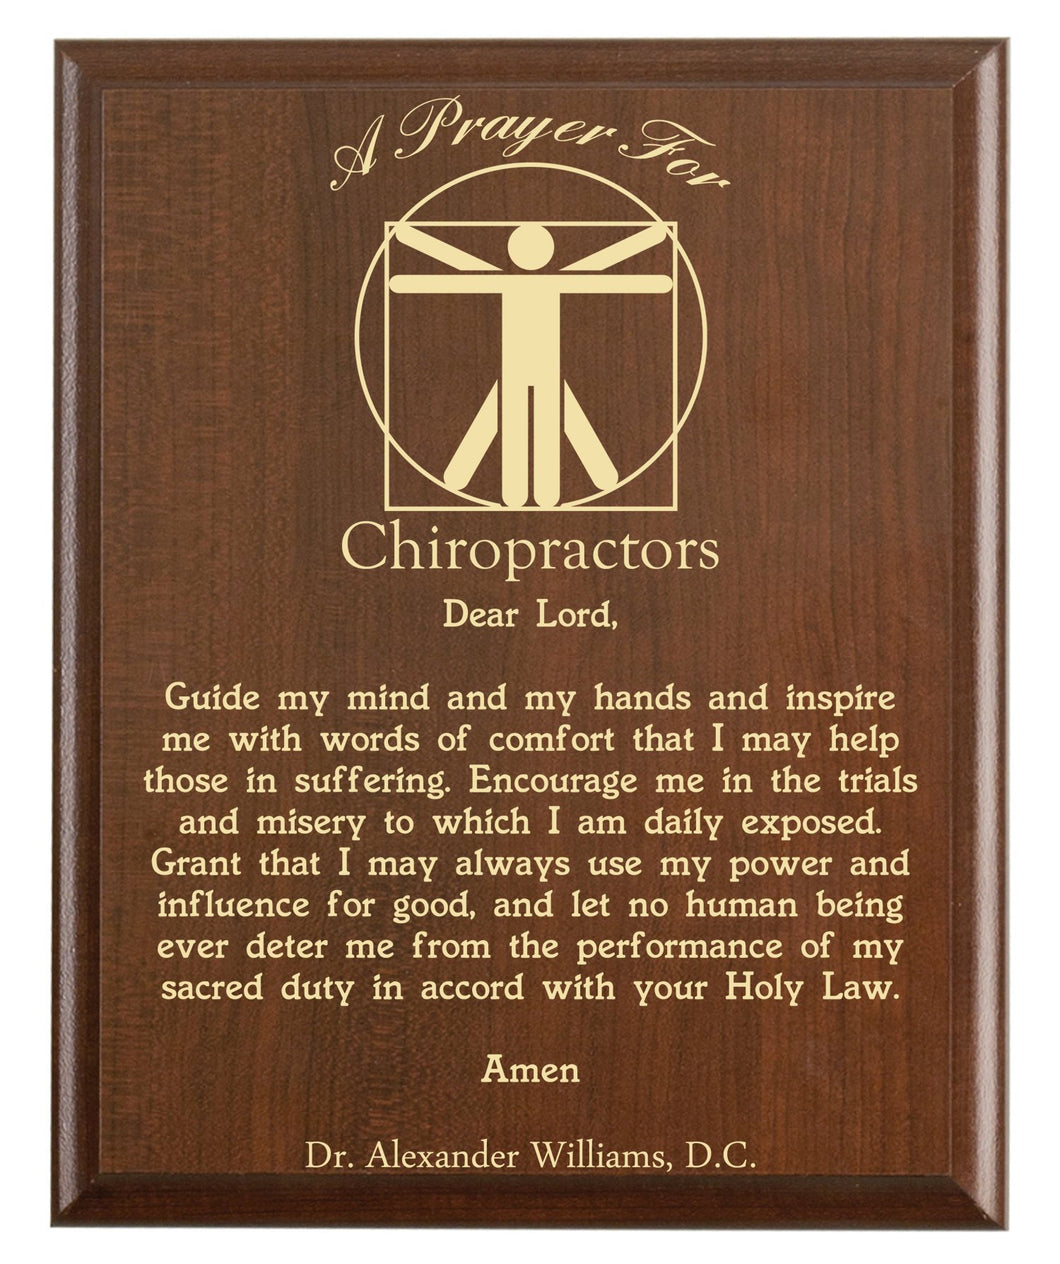 Christian prayer for a chiropractor with industry logo and free personalization. Cherry finish with laser engraved text.